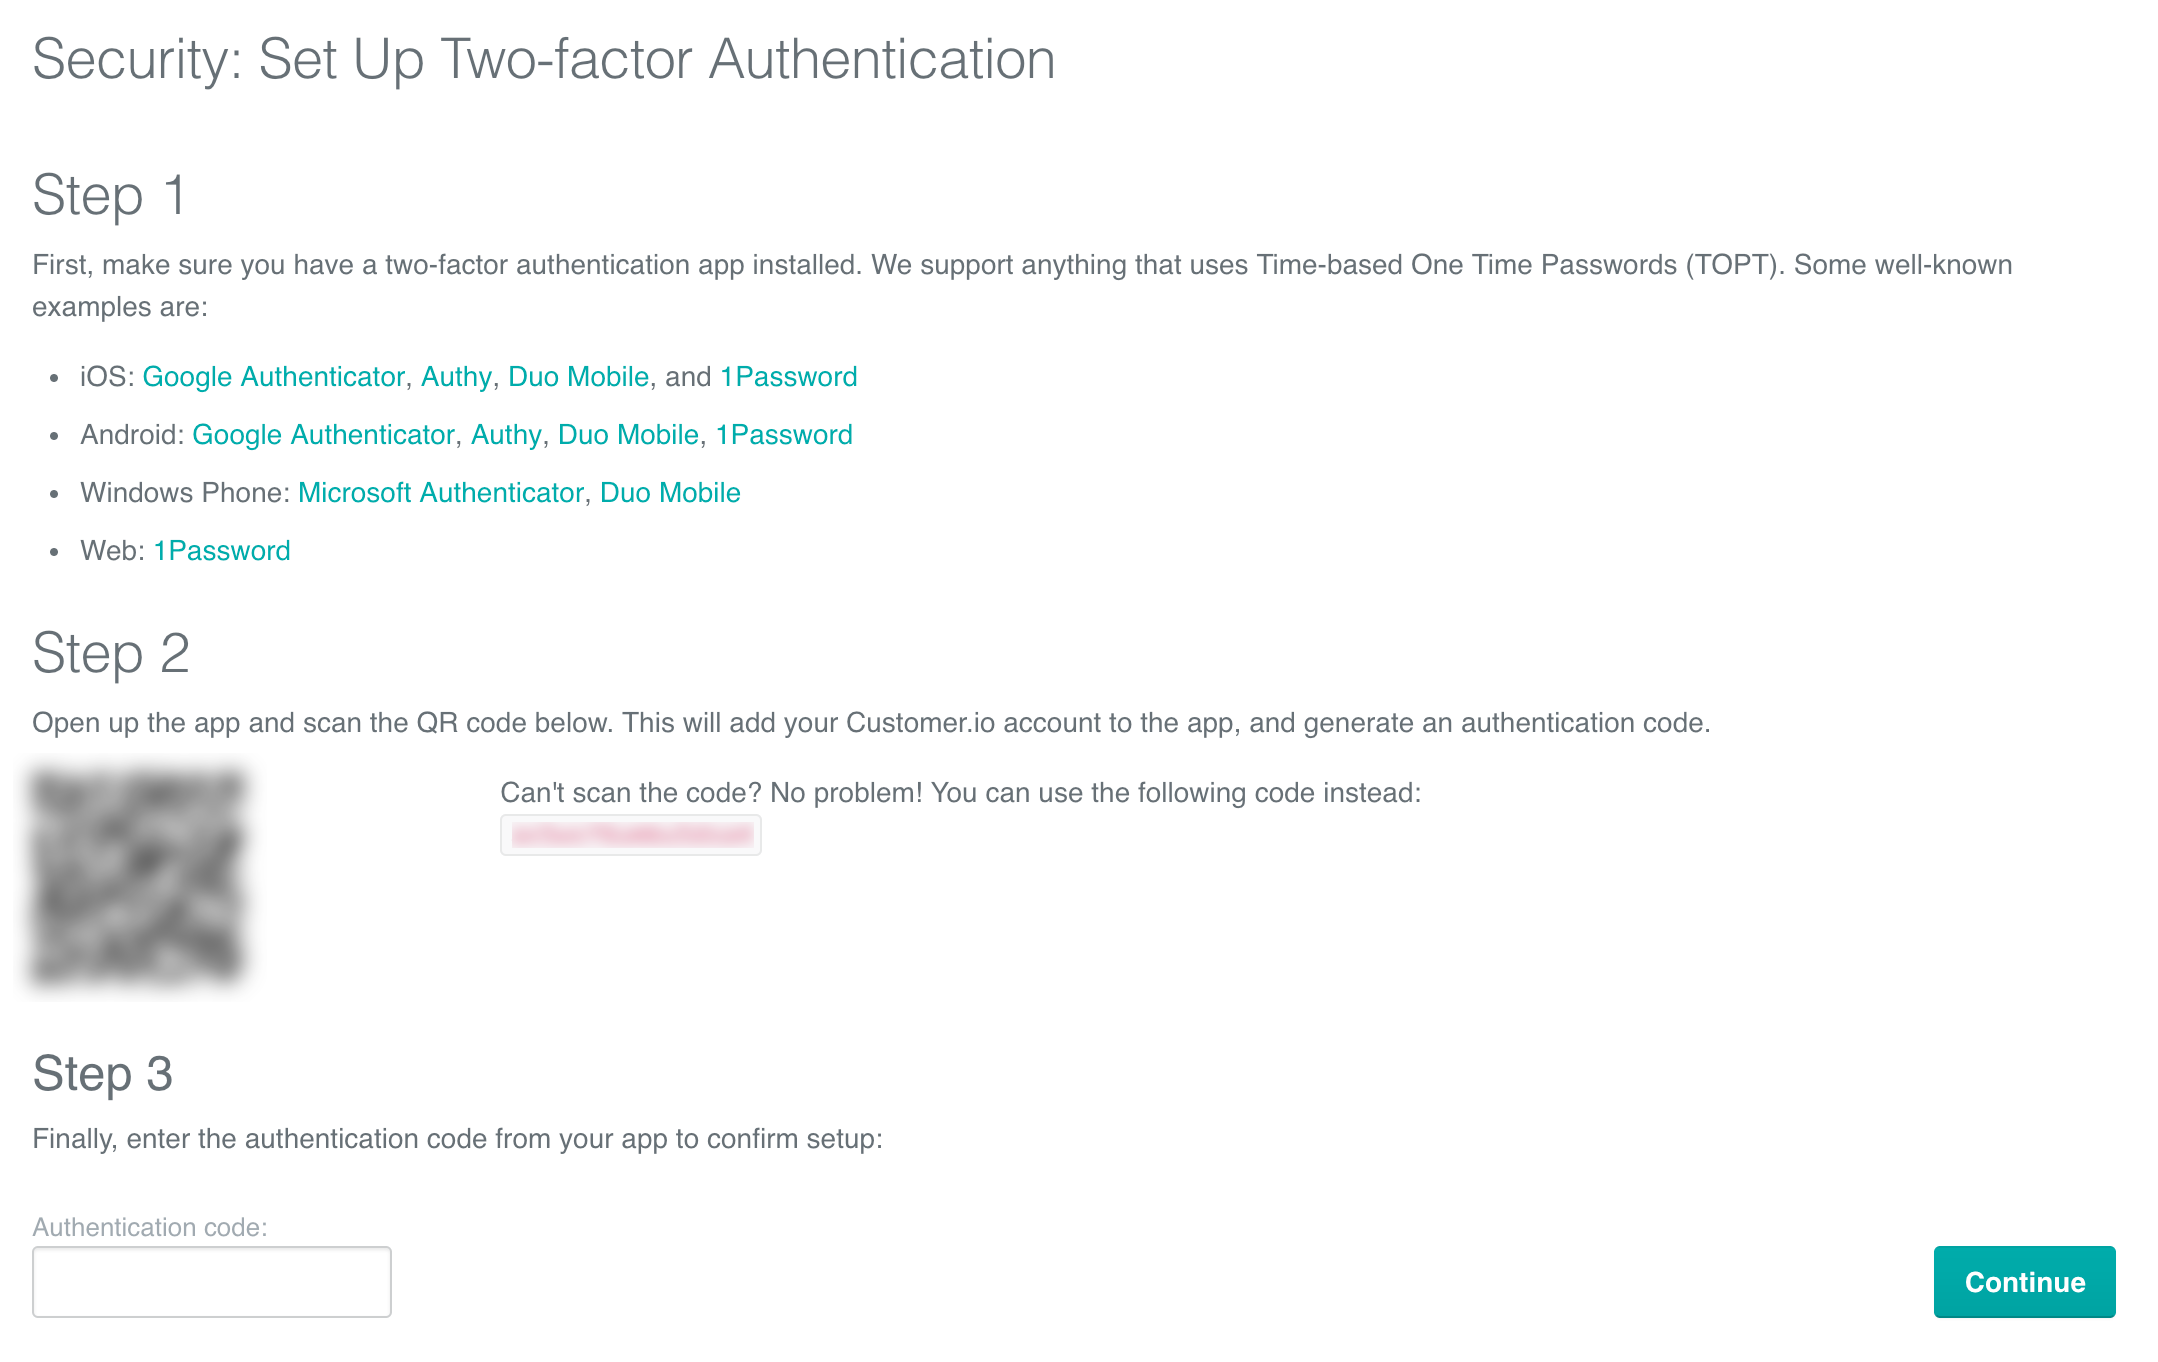 Two-factor authentication: Scan the QR code